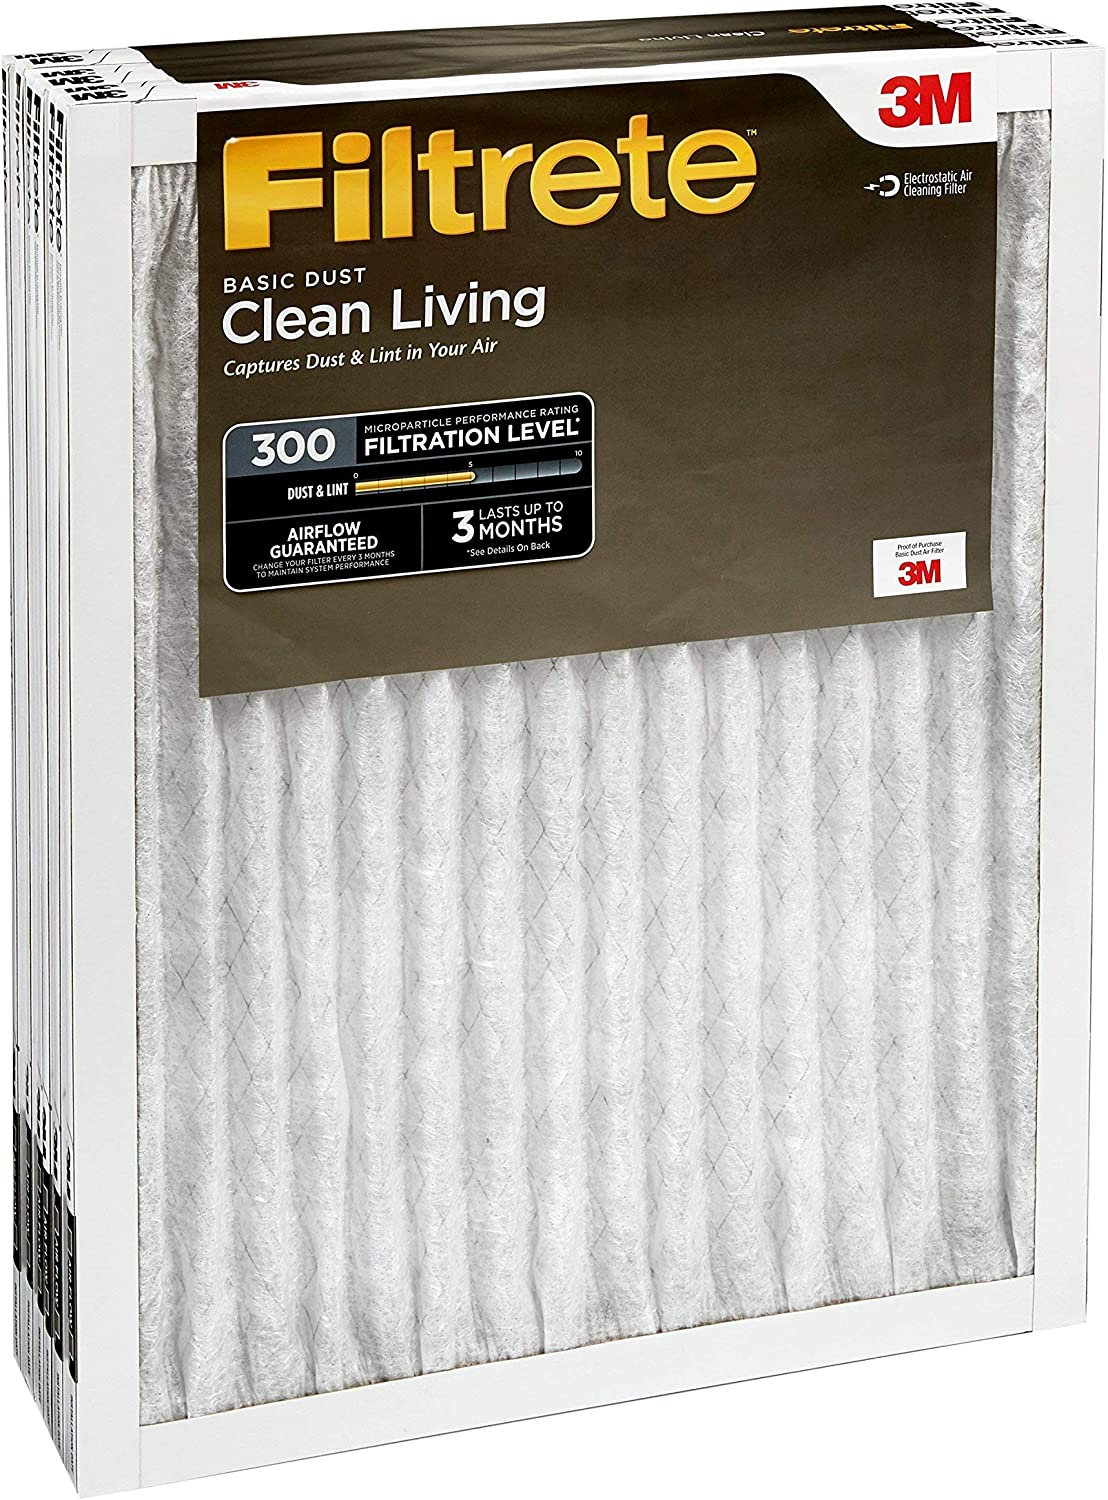 Filtrete AC Furnace Air Filter Clean Living Basic Dust 6-Pack